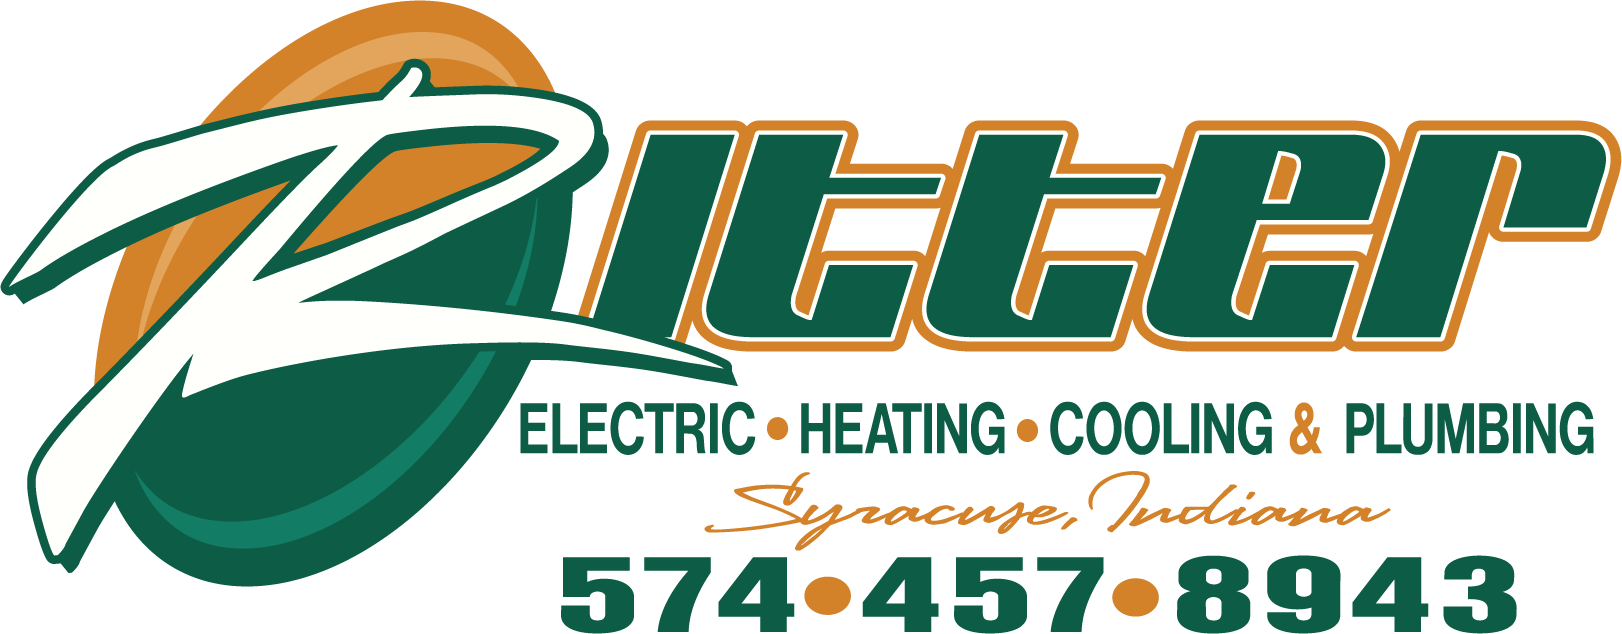 Home Ritter Commercial Plumbing Air Conditioning Maintenance